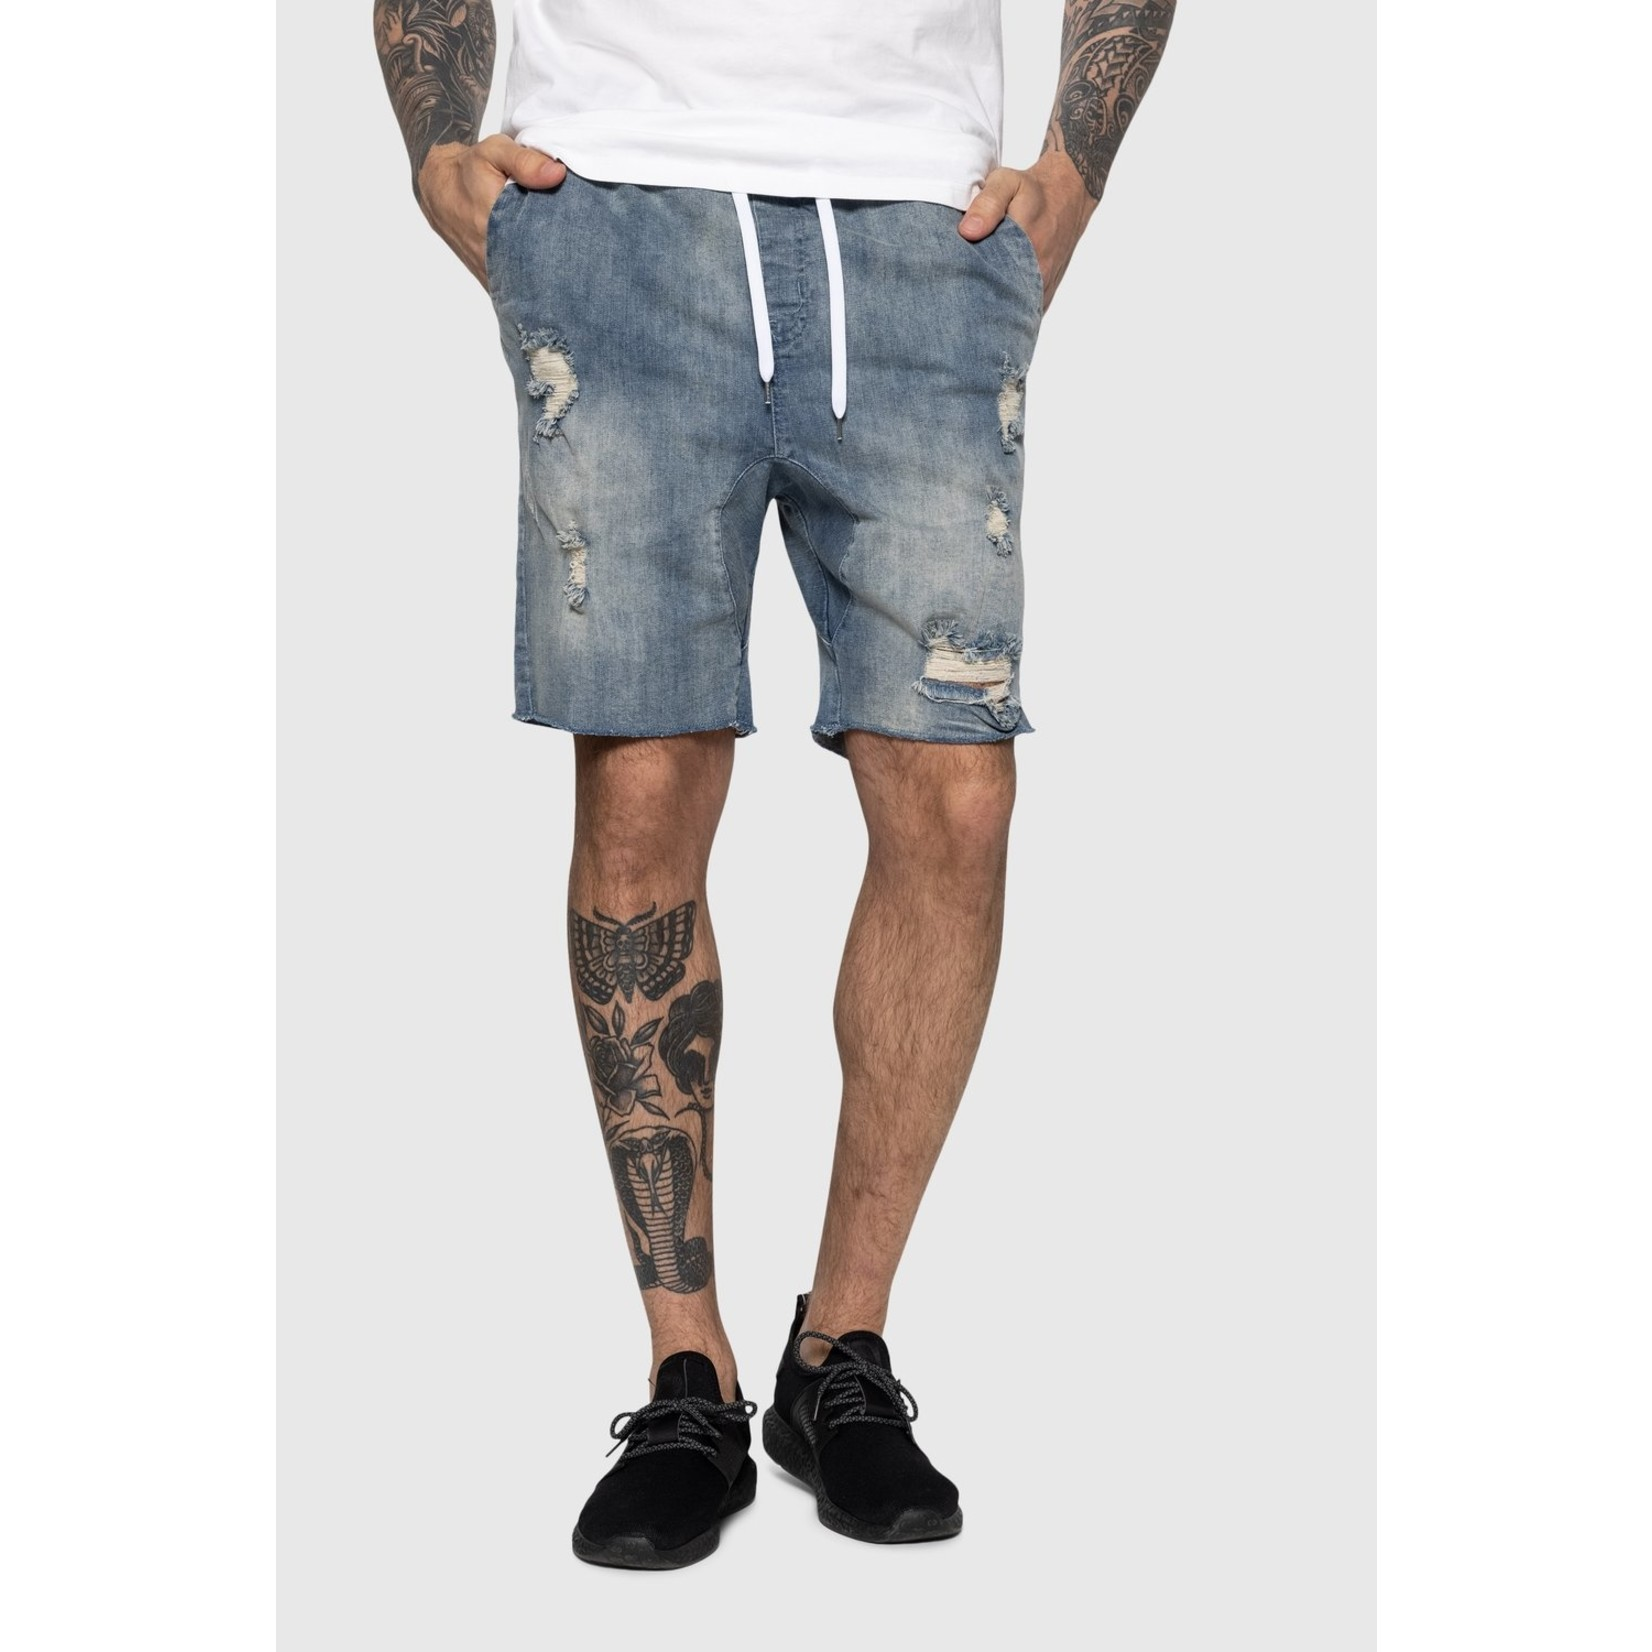 TEAMLTD DISTRESSED DENIM SHORT